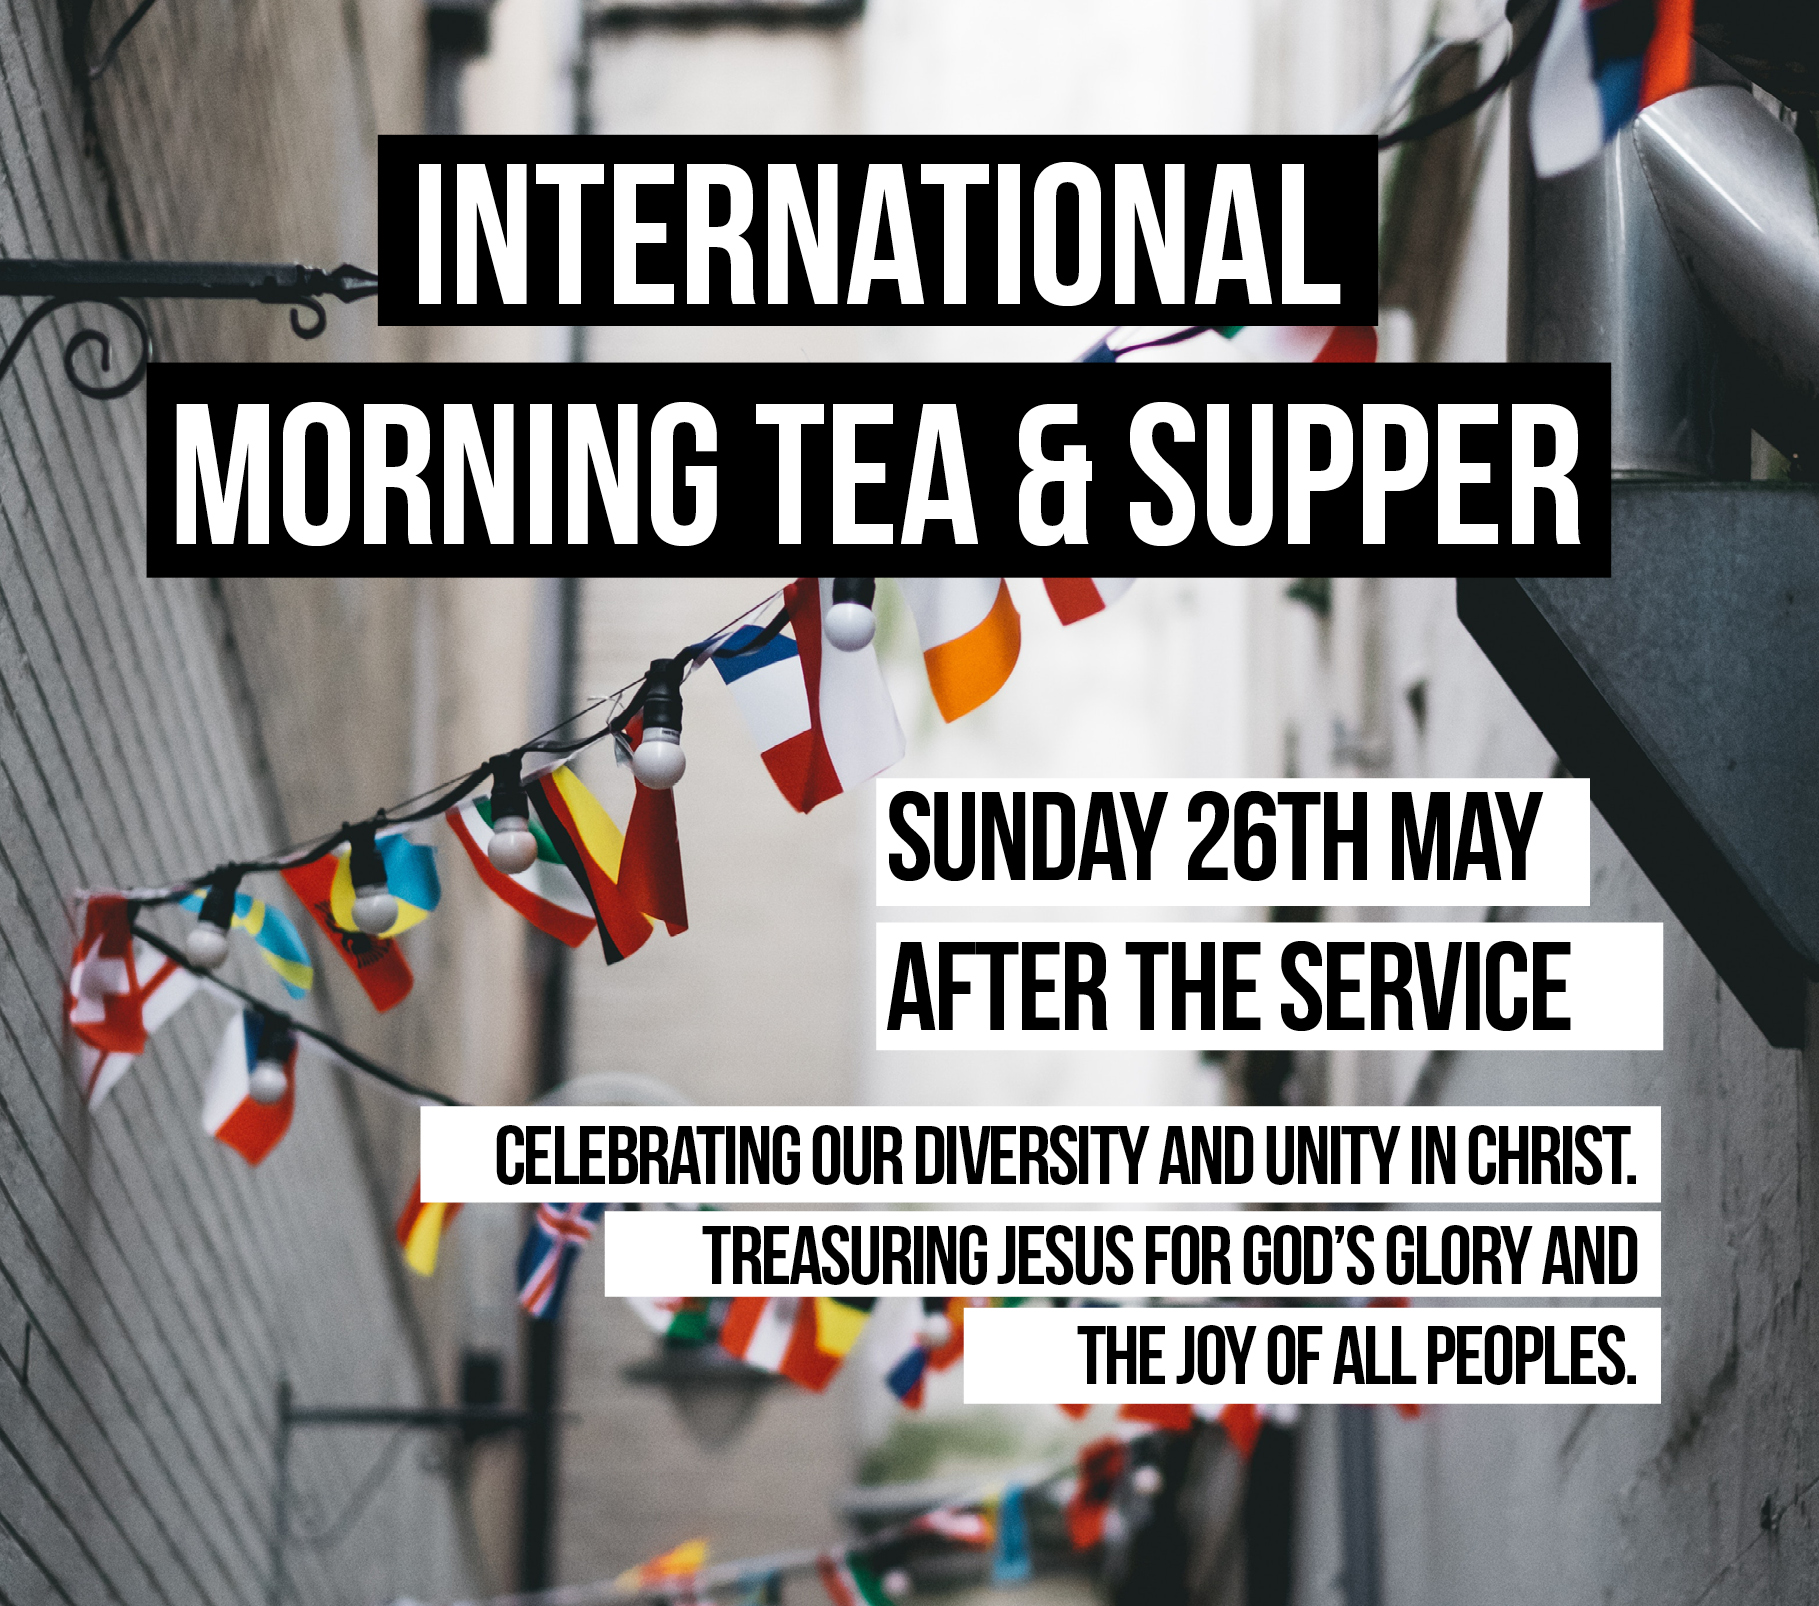 International Morning Tea & Supper